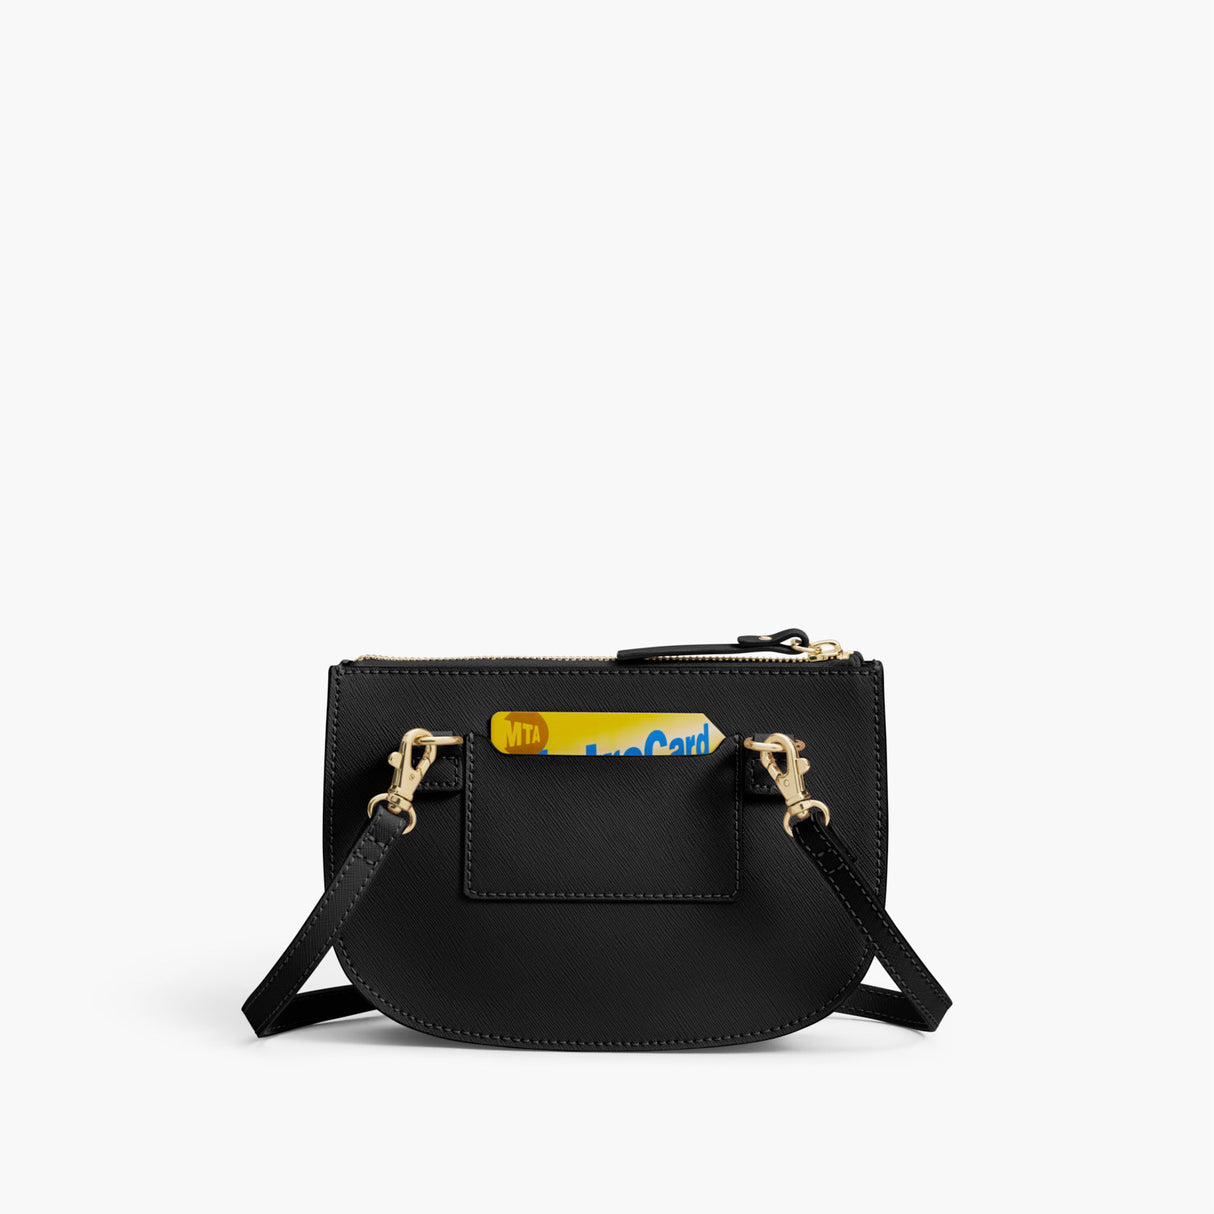 Back Card Slot - The Waverley 2 - Saffiano Leather - Black / Gold / Grey - Crossbody - Lo & Sons